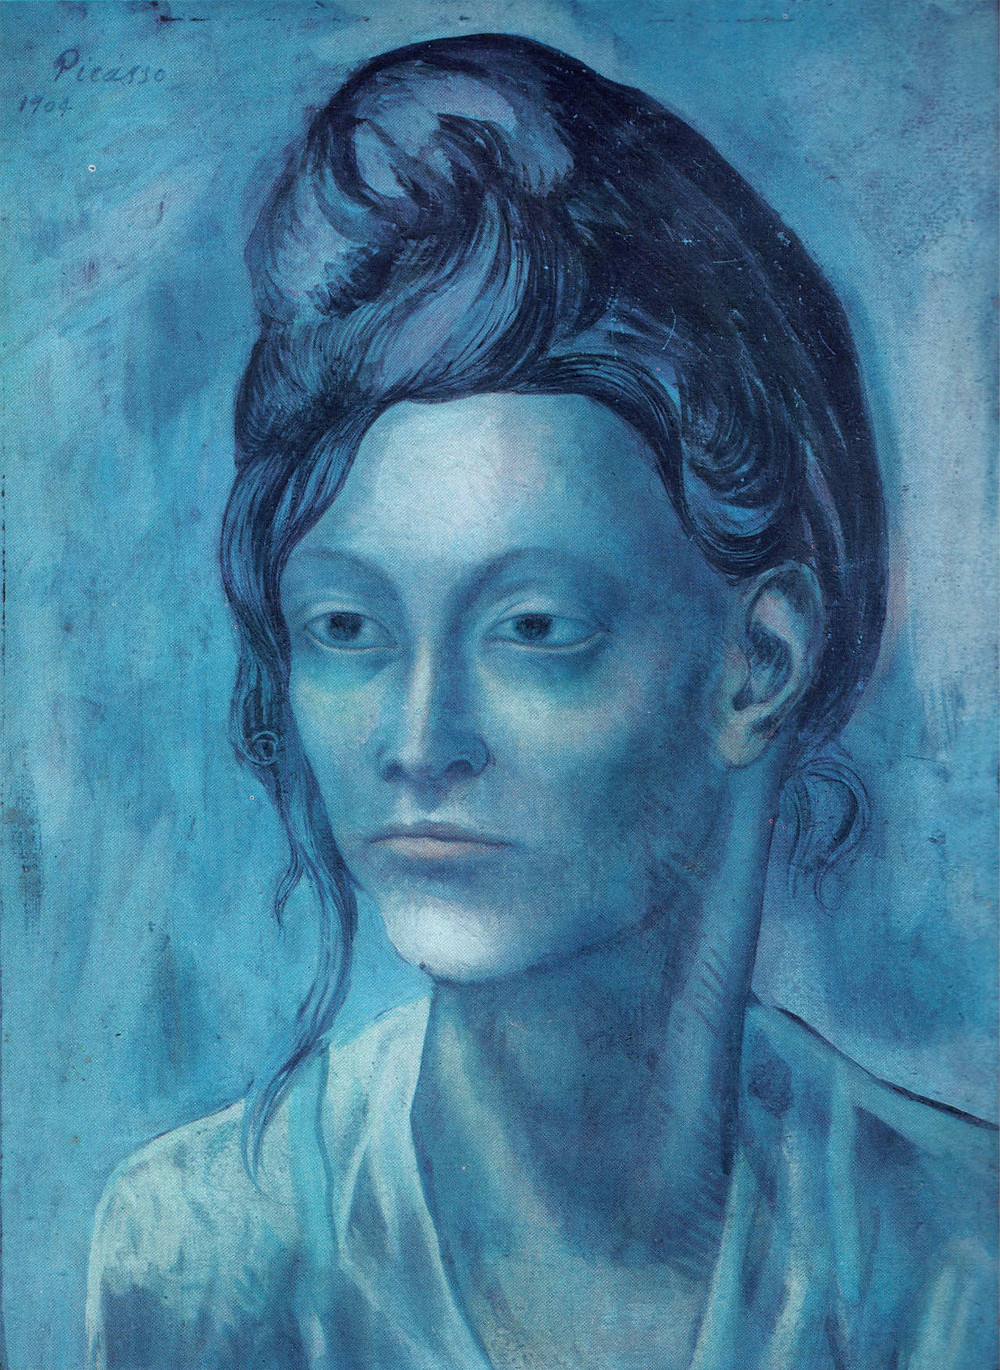 Pablo Picasso, Woman with a Helmet of Hair